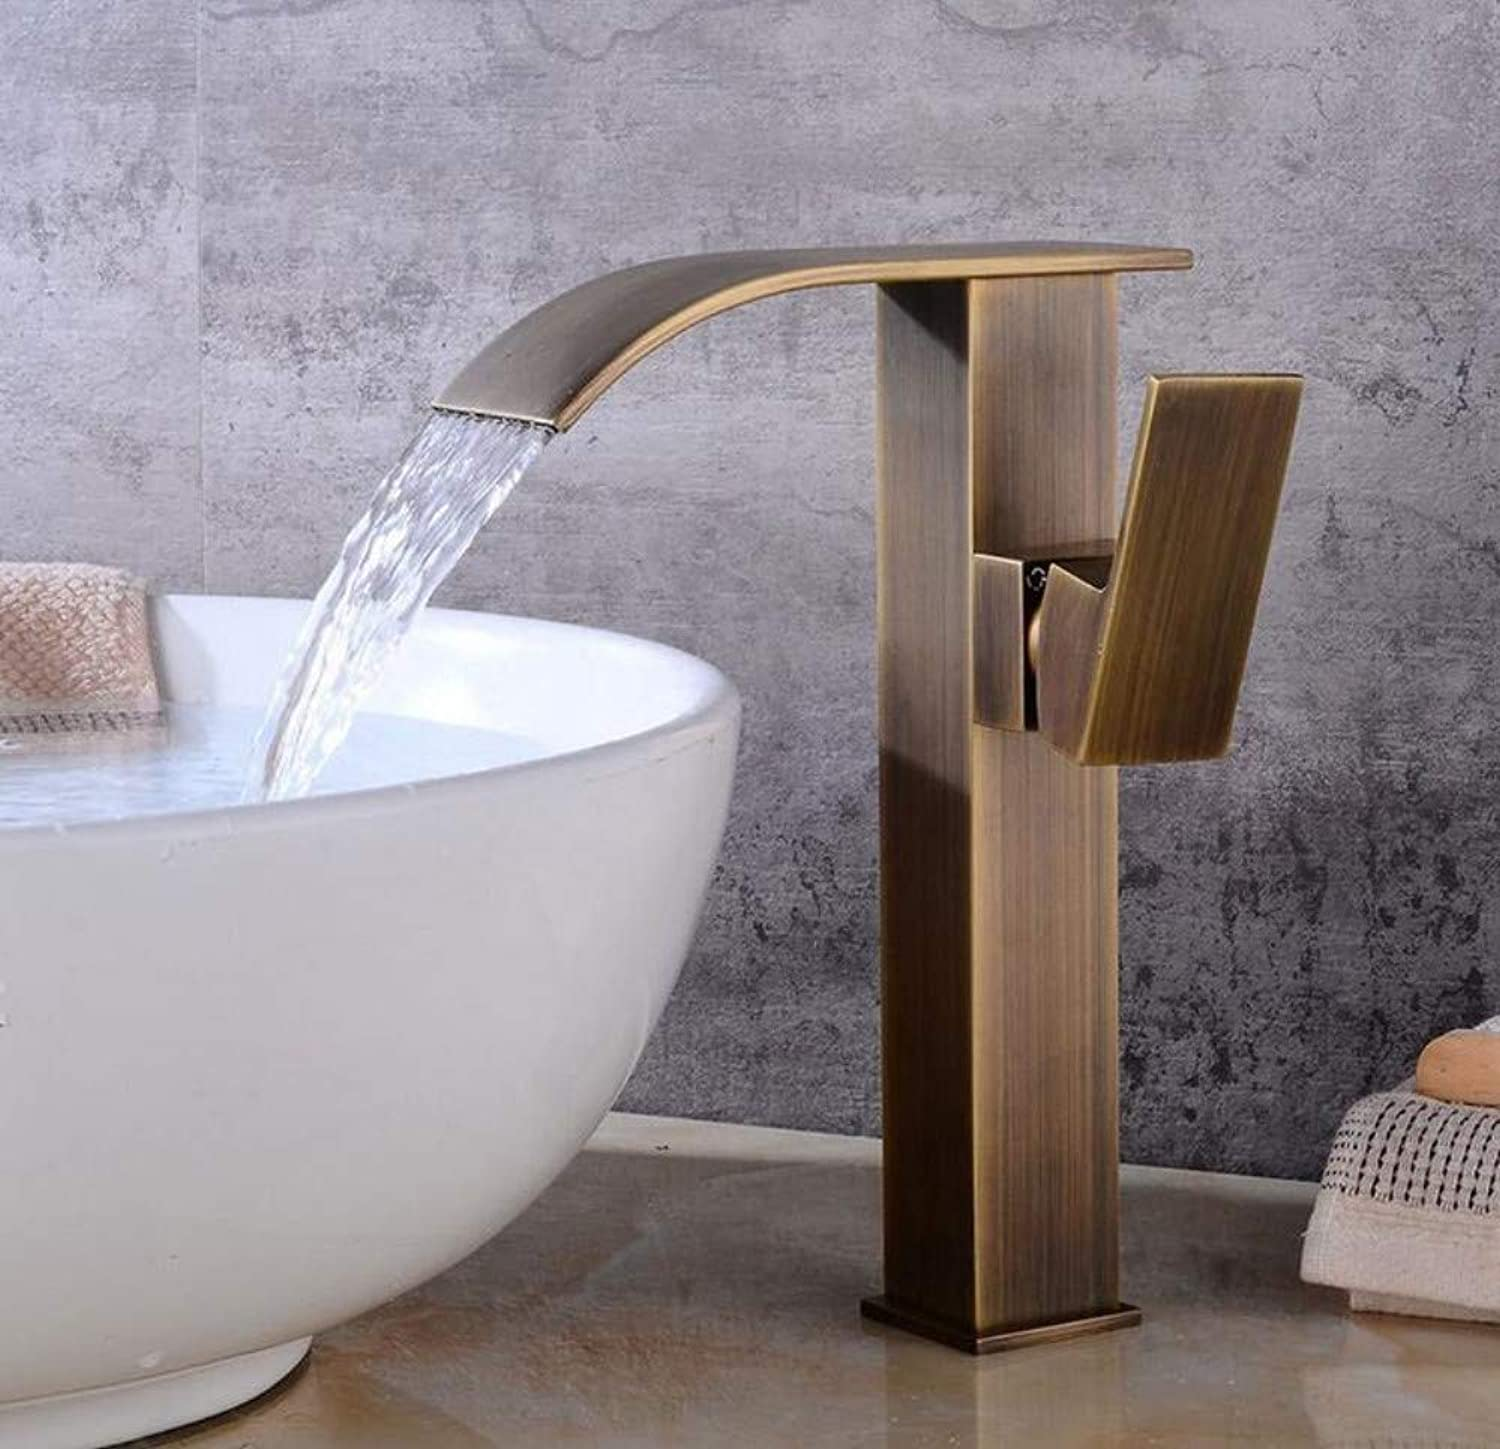 Modern Waterfall Copper Hot and Cold Kitchen Sink Taps Retro Bathroom Basin Faucet Brass Bathroom Above Counter Basin